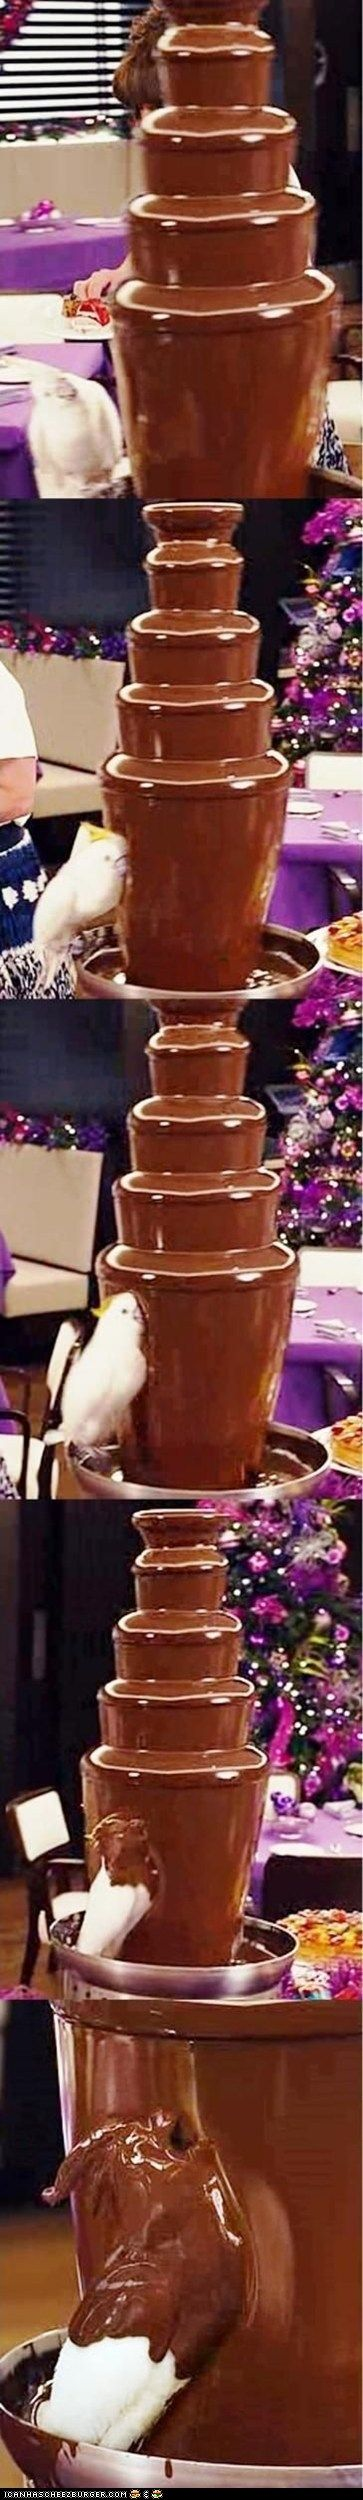 This bird does what we've all thought about doing at one point or another.: Chocolate Fountains, Laughing, Chocolates Fountain, Birdbaths, Parrots, Chocolates Covers, Chocolate Covered, Birds Bath, So Funny